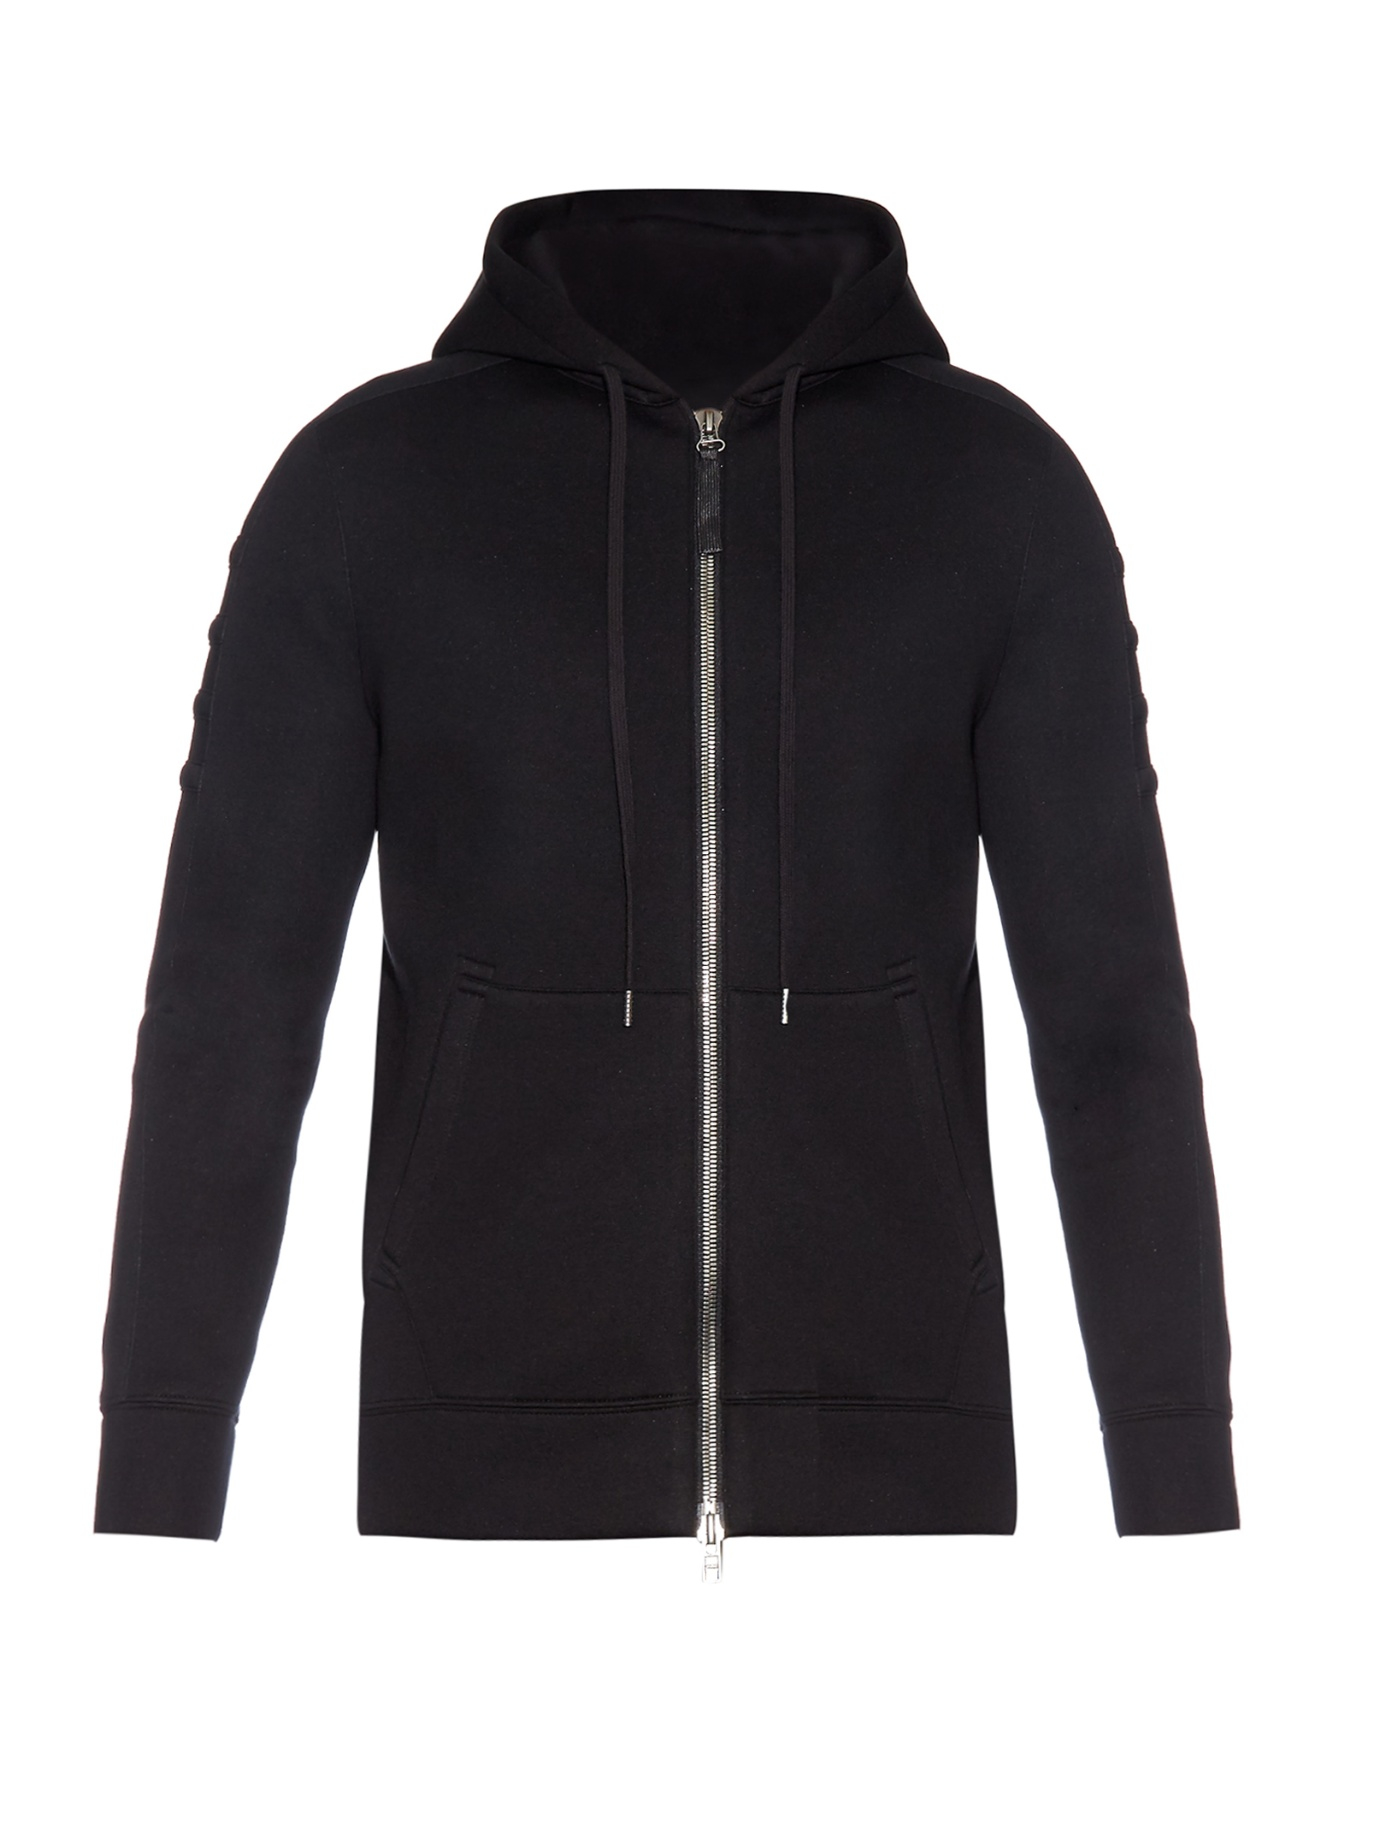 Find black hooded zip up sweatshirt at ShopStyle. Shop the latest collection of black hooded zip up sweatshirt from the most popular stores - all in.